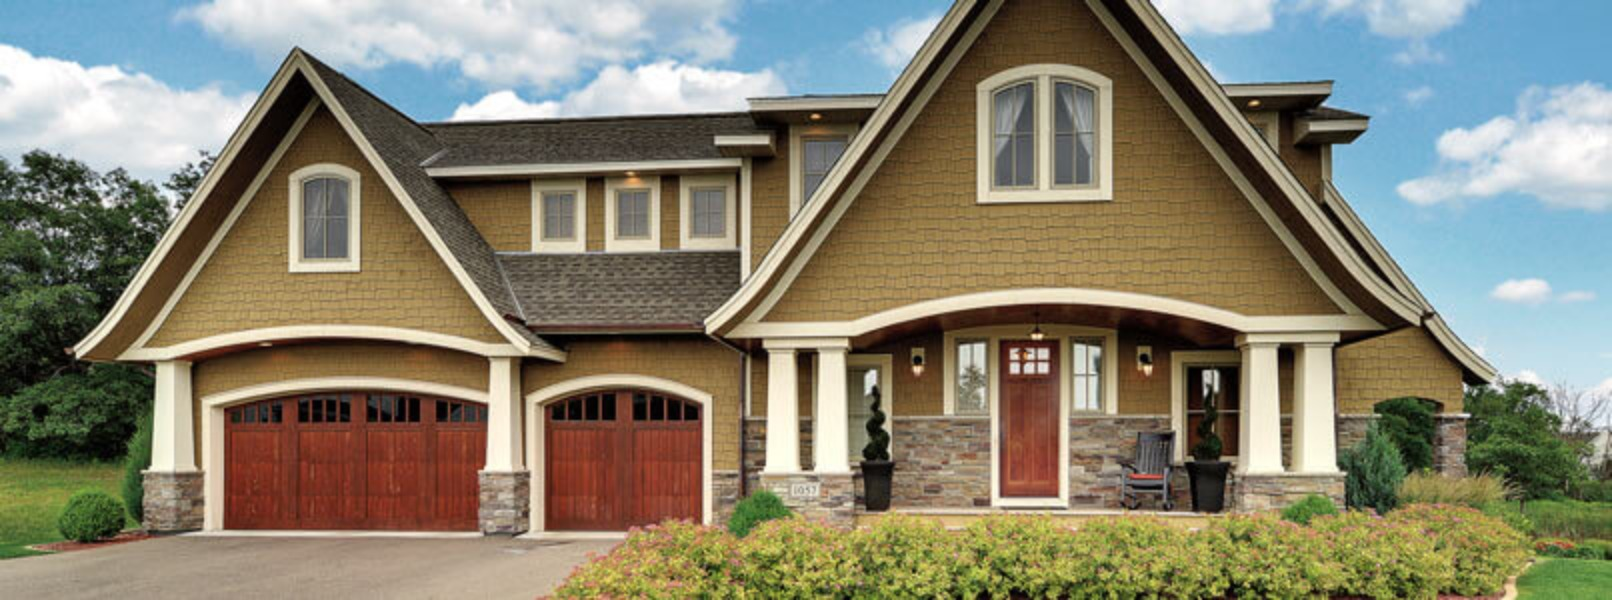 Choosing the right window and door styles